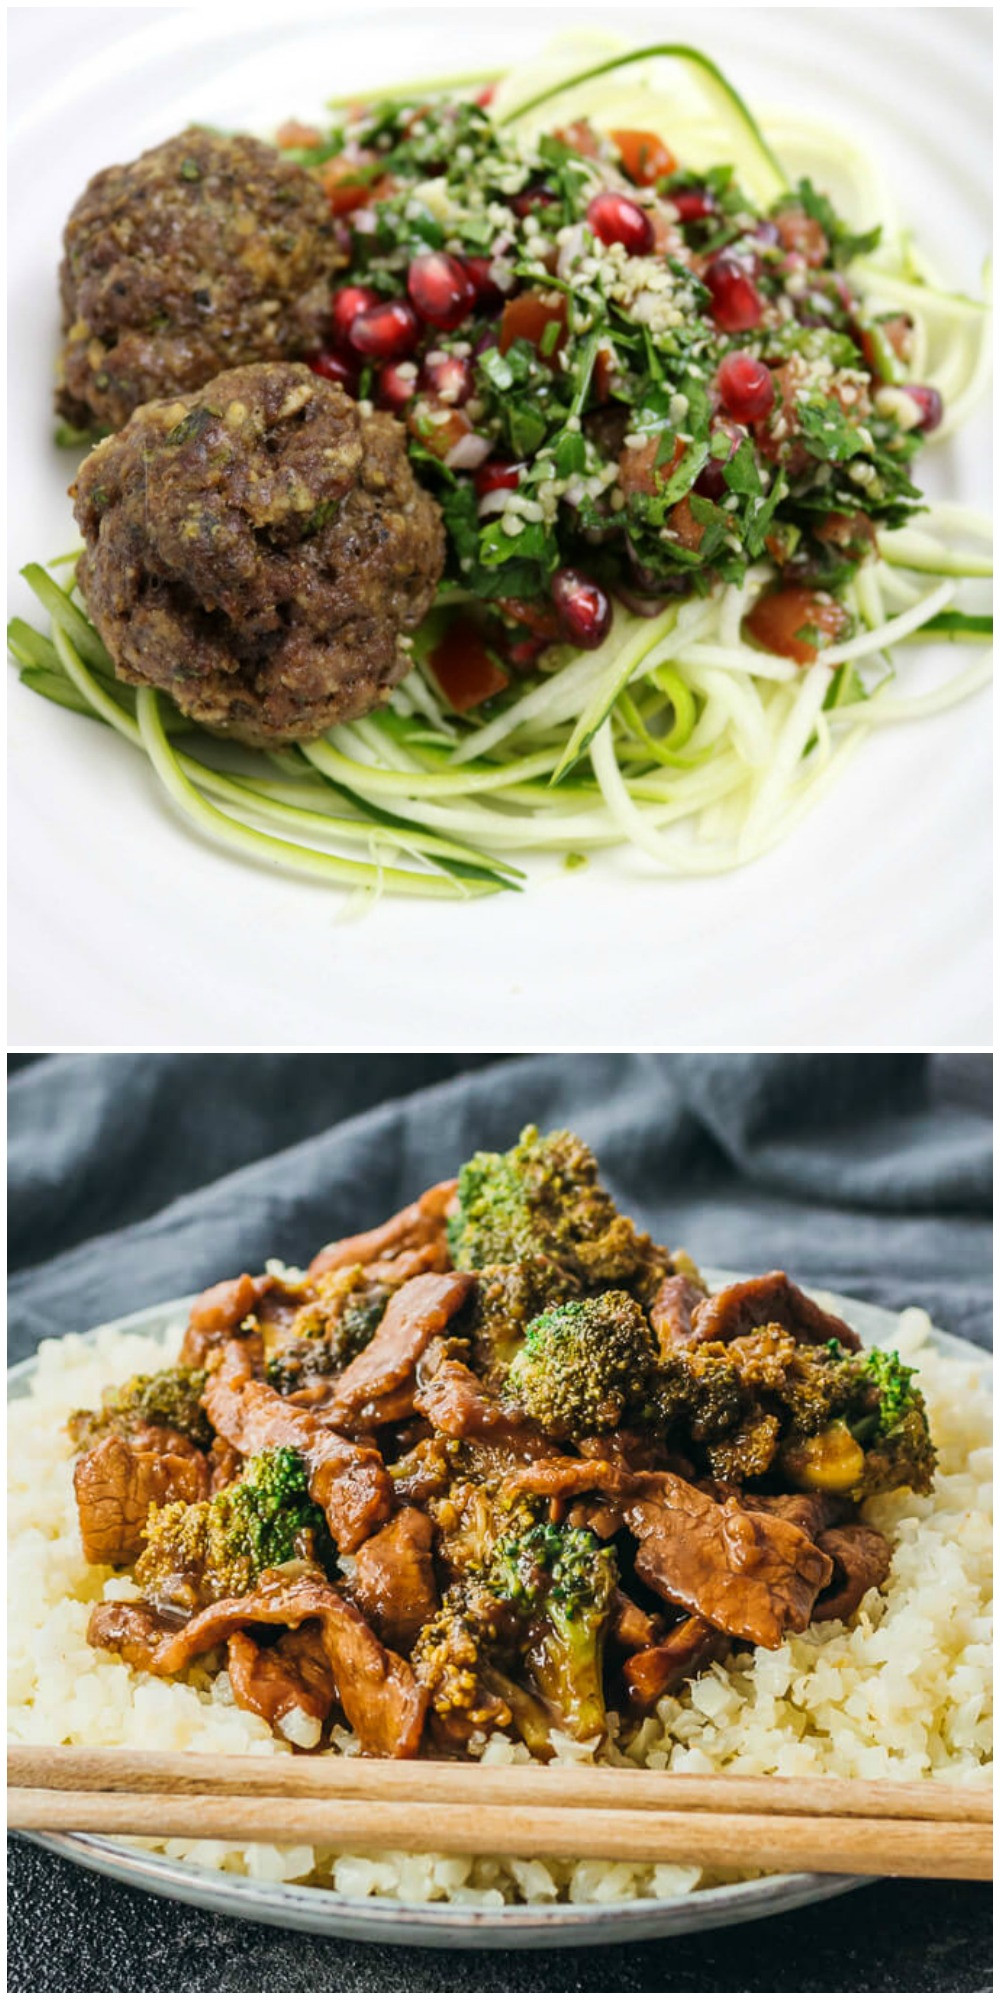 Low Carb Dinner Recipes  17 Low Carb Dinner Recipes from MamaMommyMom